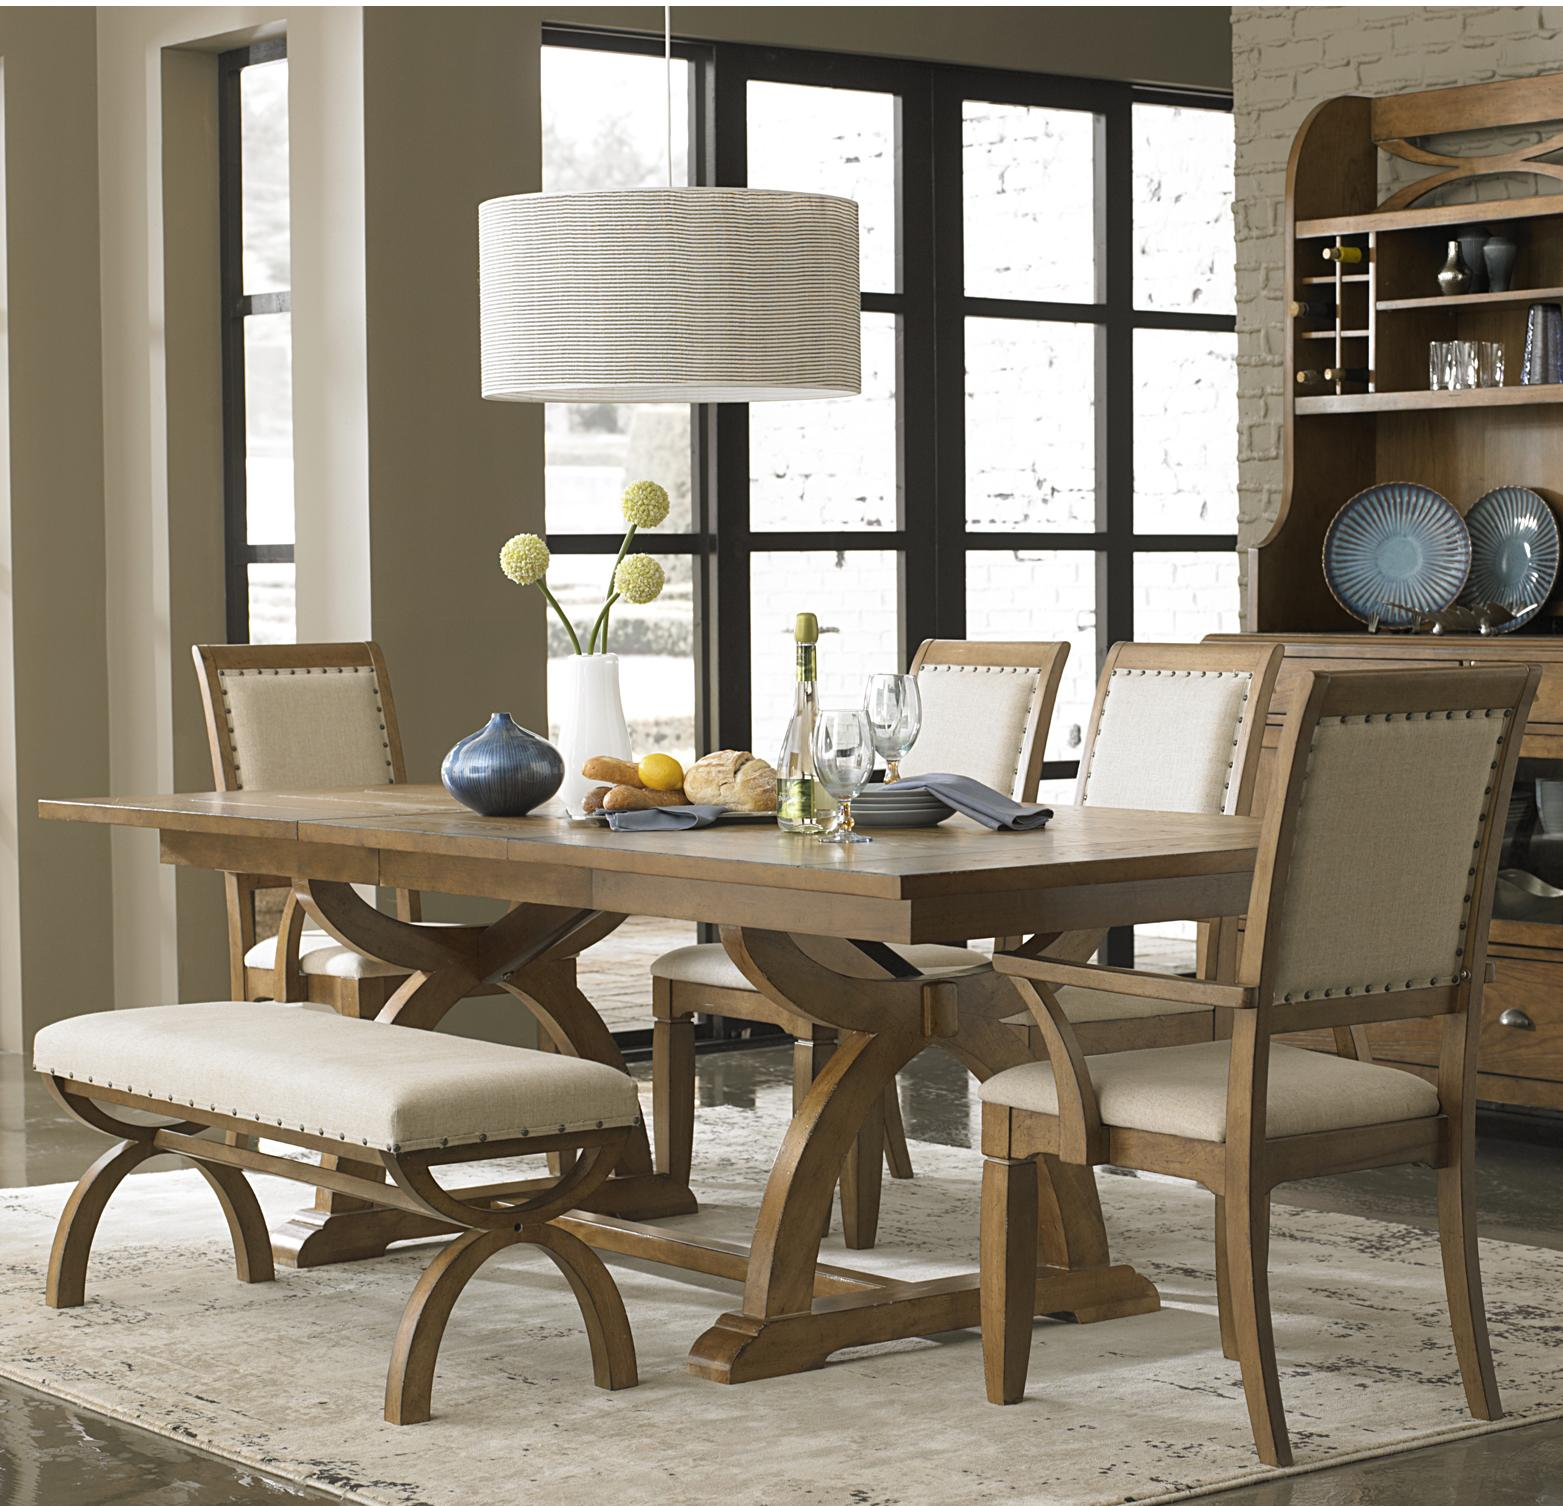 Liberty Furniture Town & Country 6 Piece Trestle Table Set  - Item Number: 603-DR-SET124